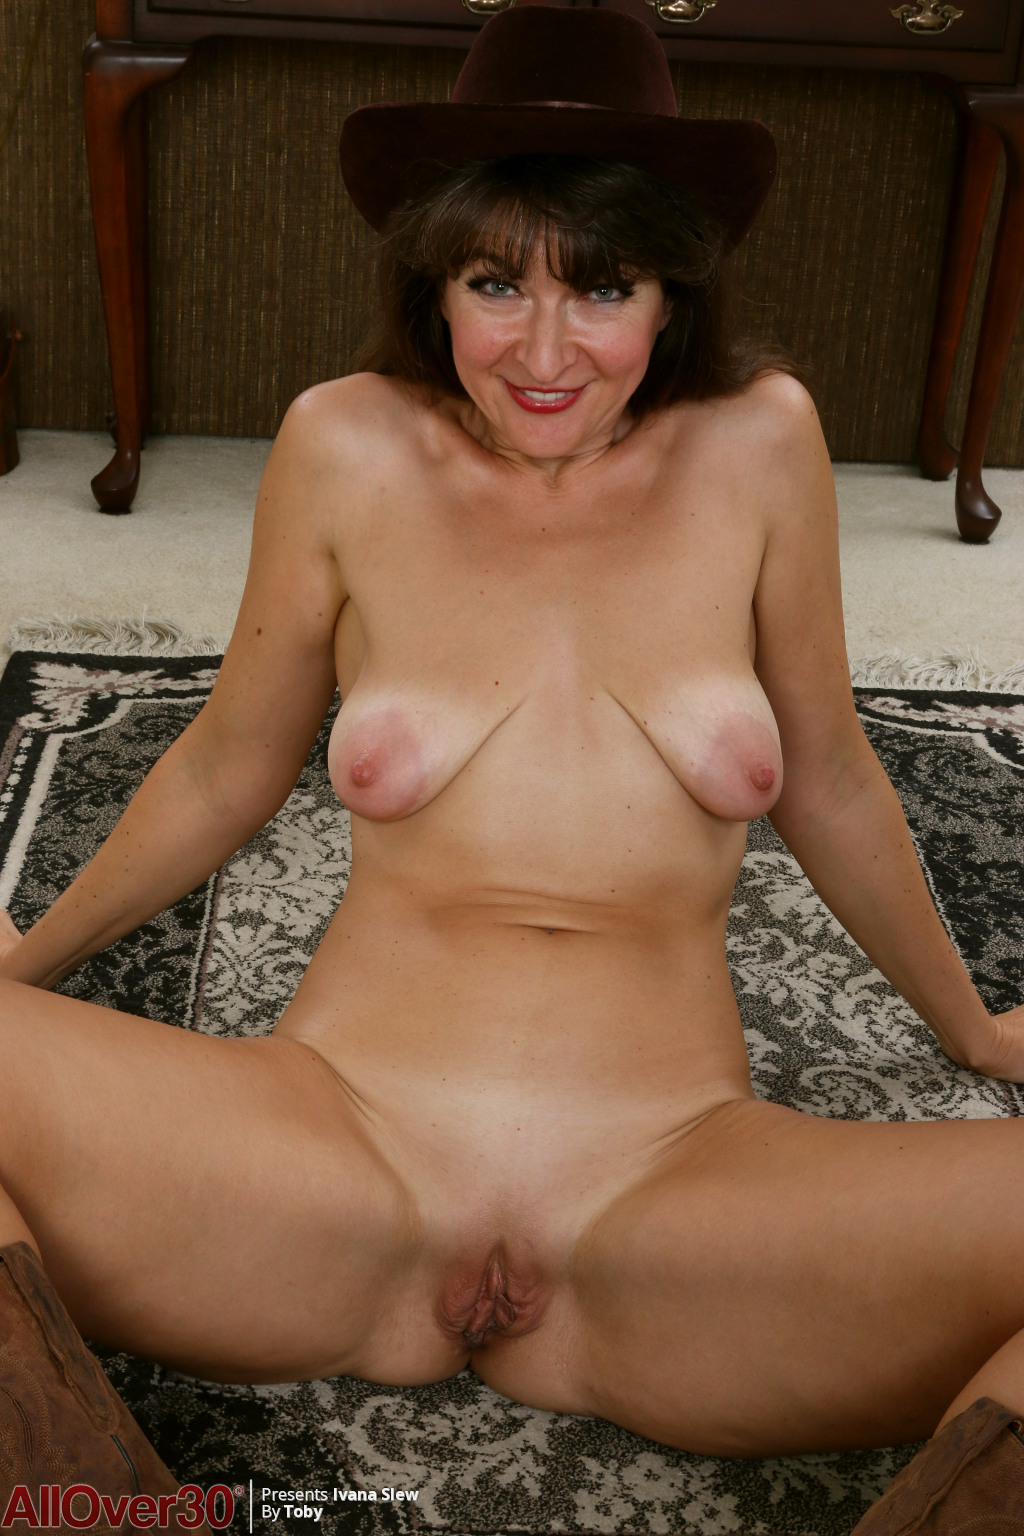 horny-cowgirl-ivana-slew-lets-us-see-her-saggy-breasts-and-hot-shaved-pussy16.jpg